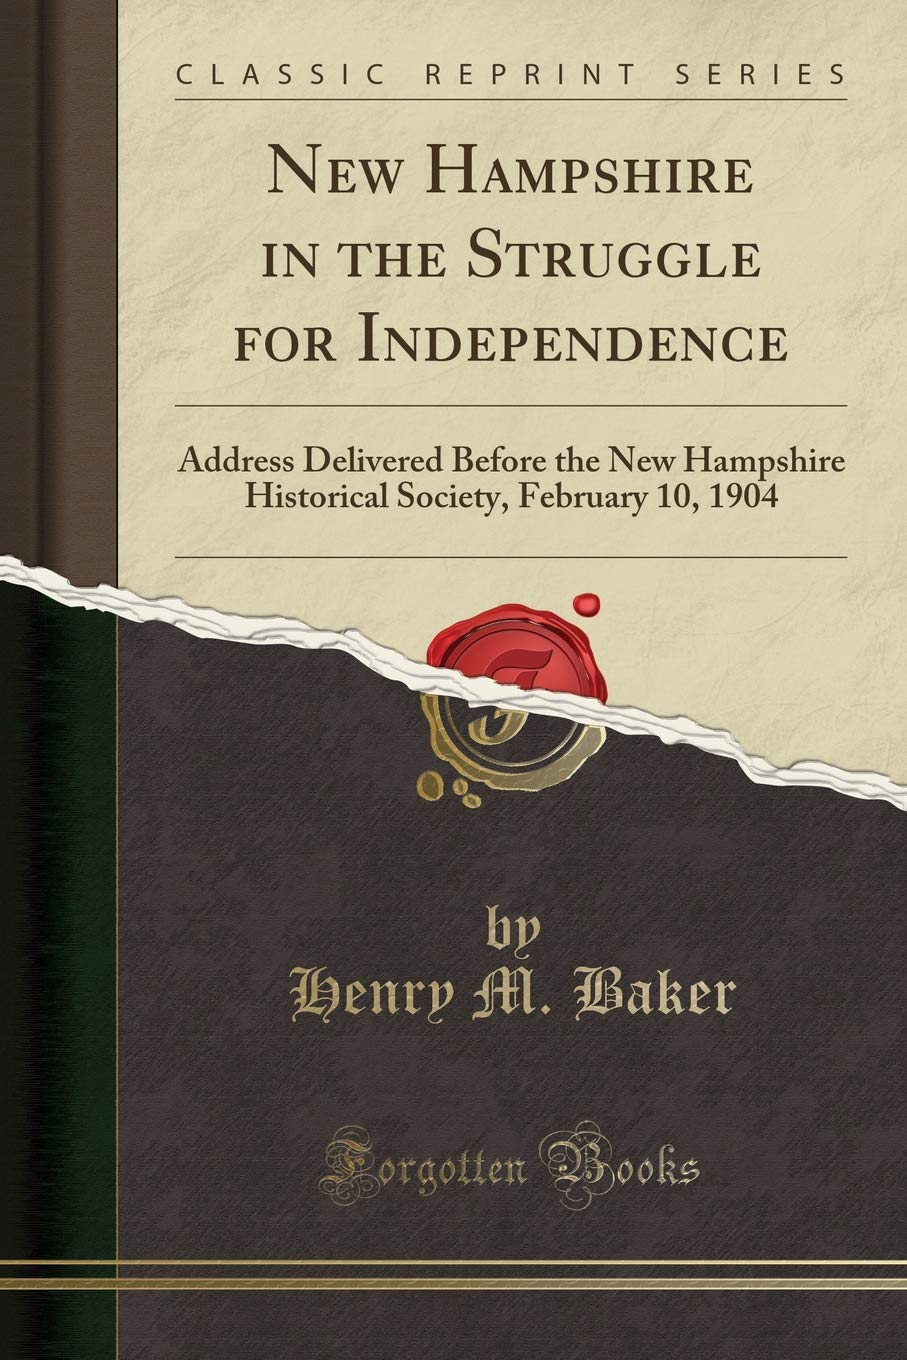 New Hampshire in the Struggle for Independence: Address Delivered Before the New Hampshire Historical Society, February 10, 1904 (Classic Reprint) pdf epub